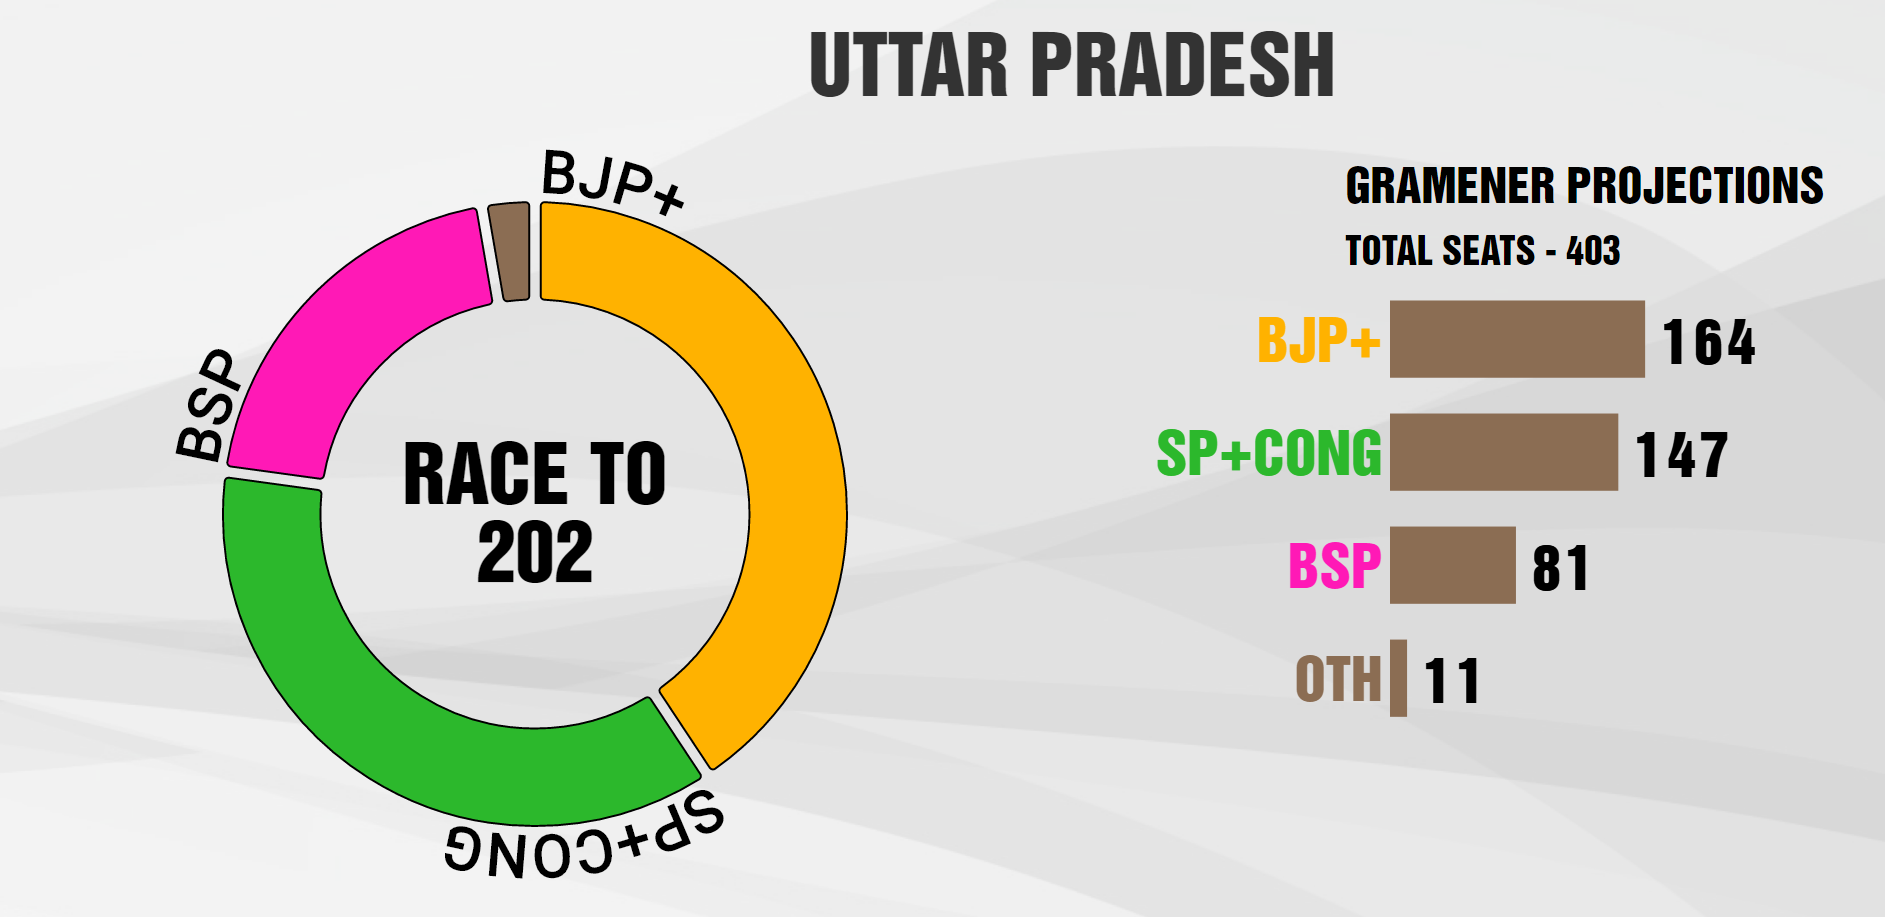 With no end to feud mulayam akhilesh yadav look for life beyond the cycle economic times - The Pollster Predicts Bad News For Bsp With The Party Tariling Third With 81 Seats